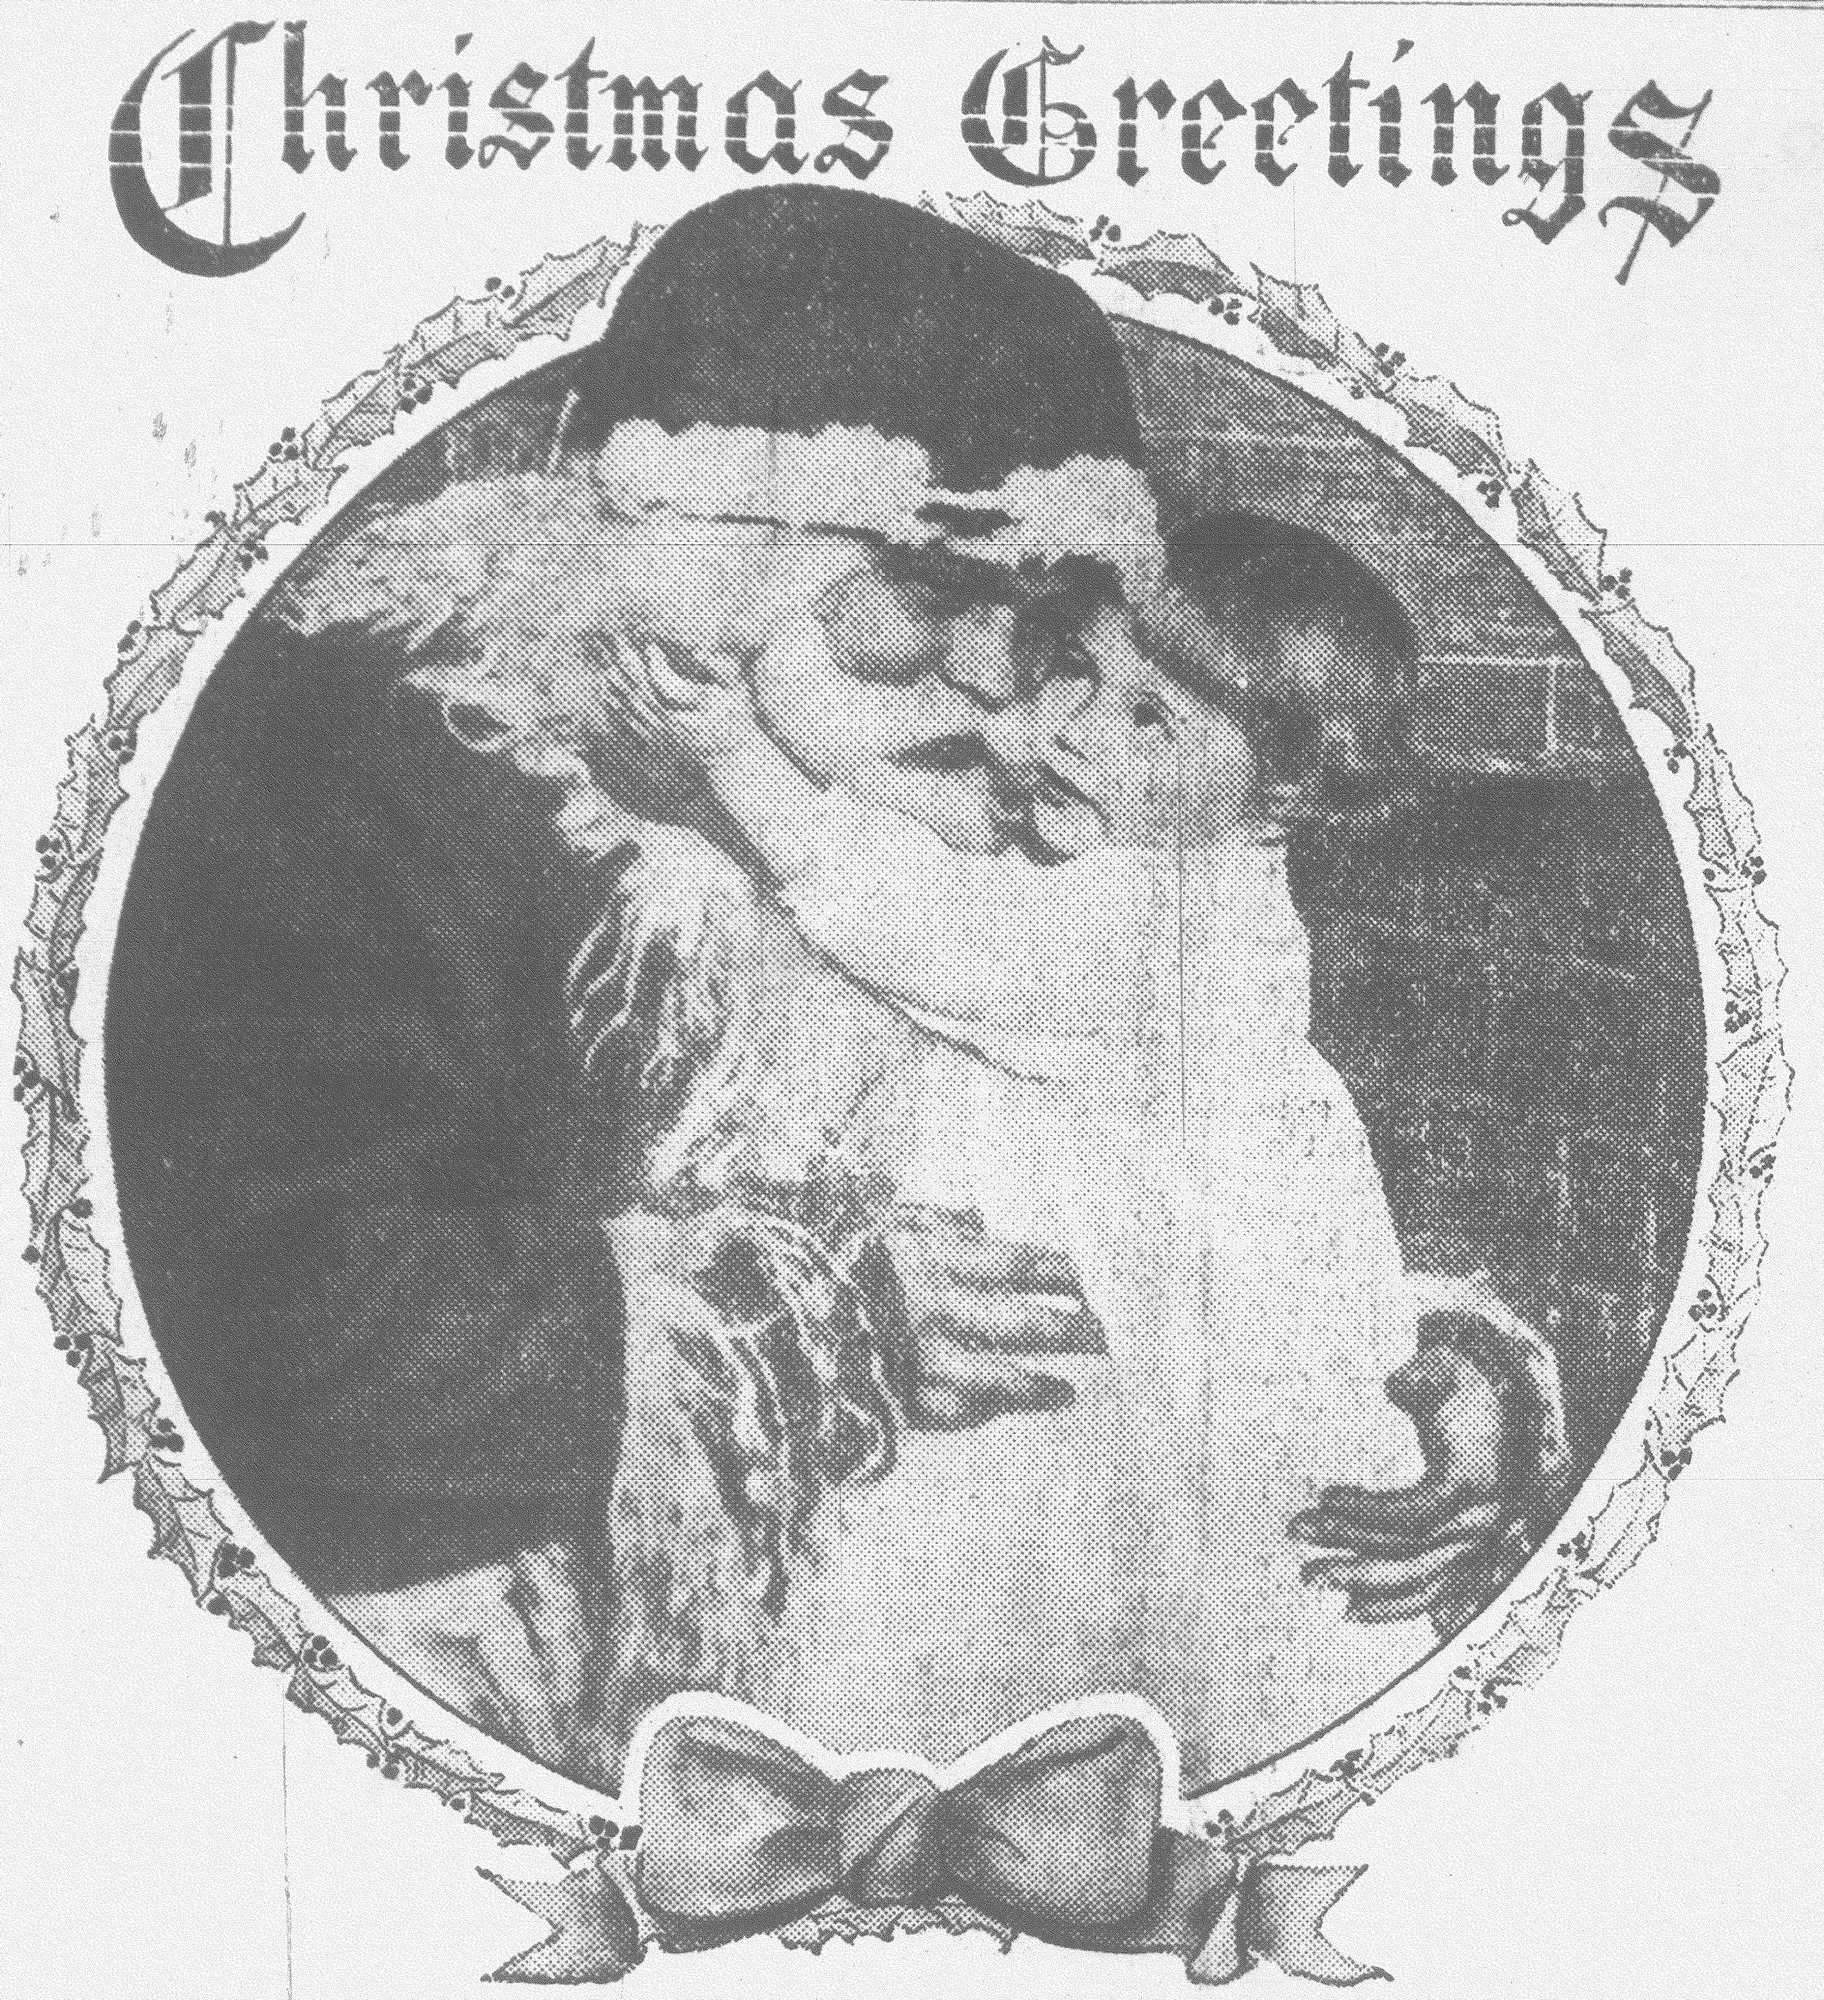 A child hugs Santa Claus in Sumter in 1931. In 1926, Helena Bultman brought the idea of bringing Santa to Sumter each December to greet children awaiting his arrival.